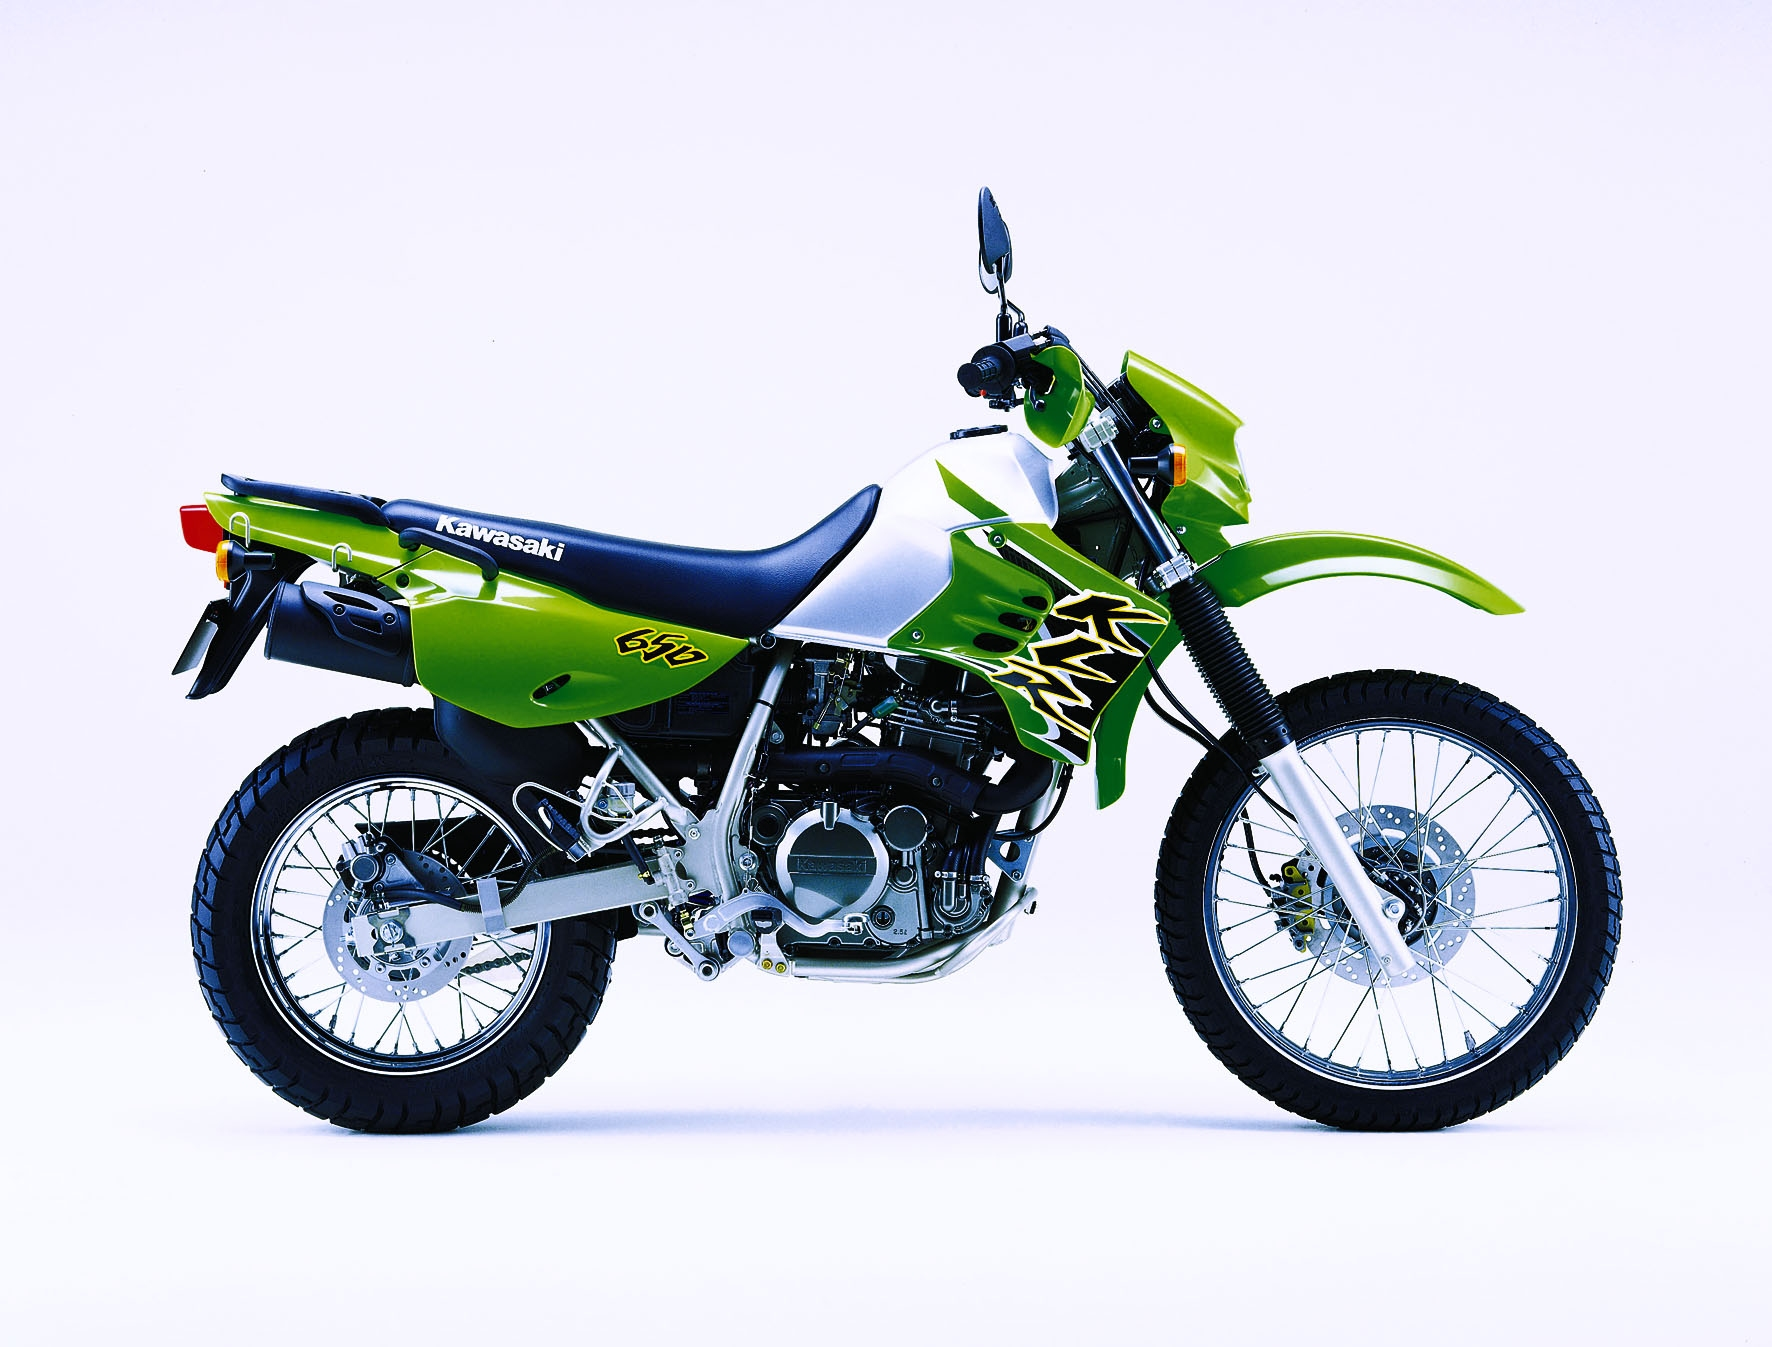 kawasaki klr650 color wiring diagram pictures